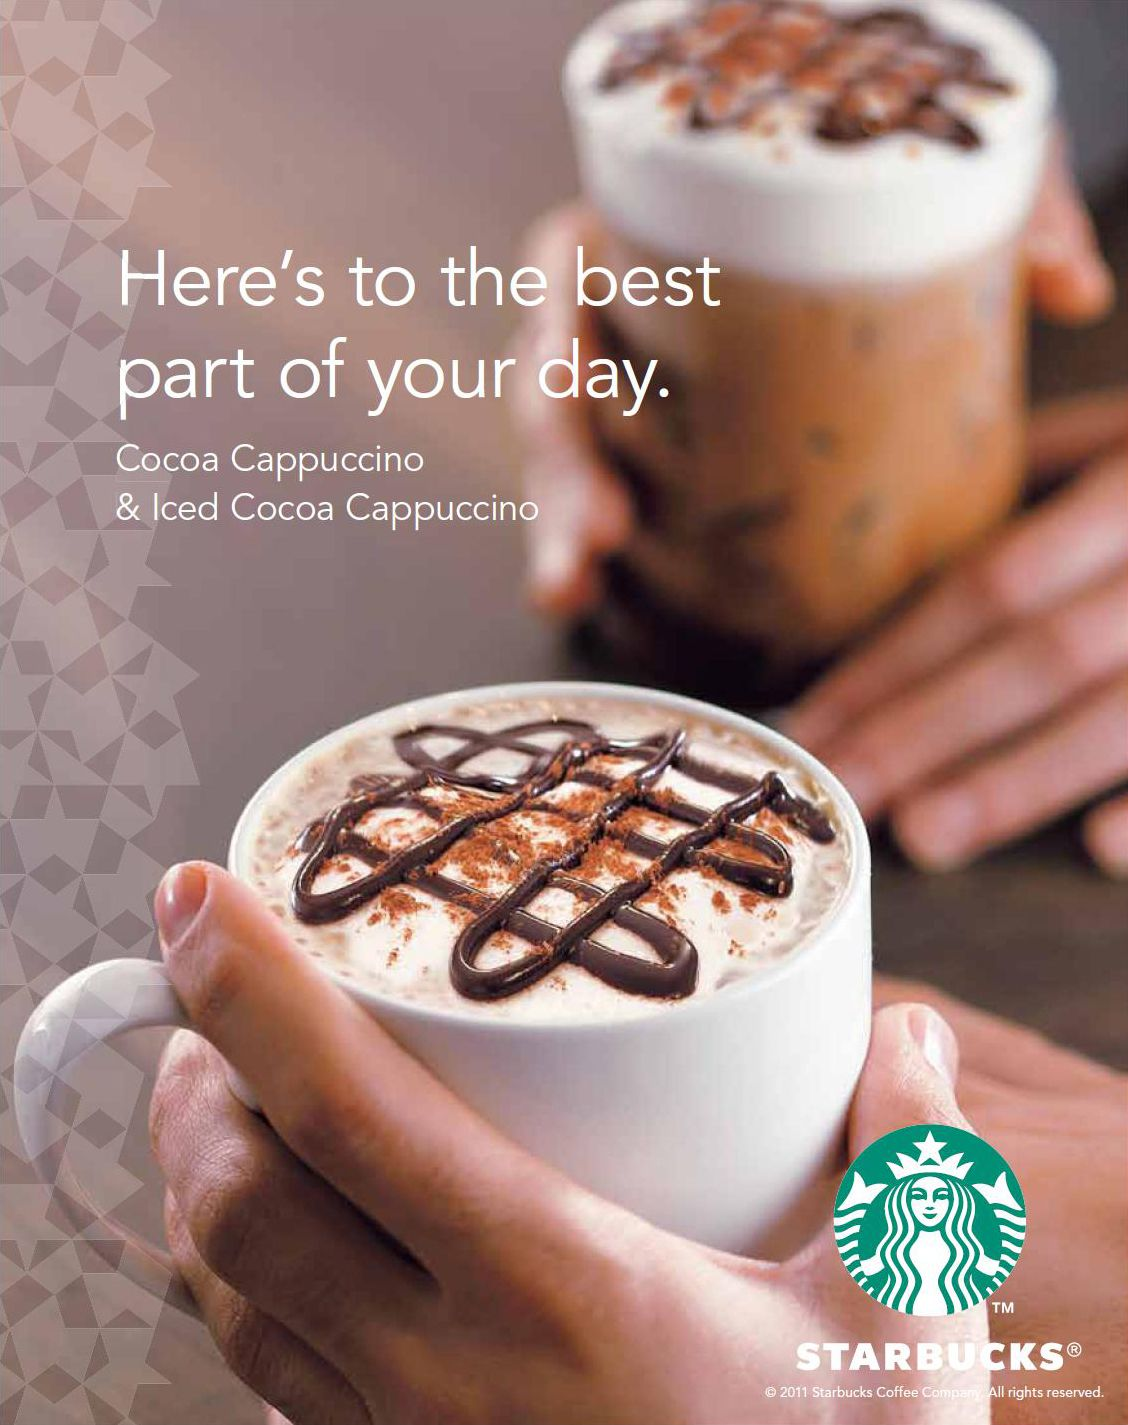 Morning Heres To The Best Part Of Your Day Starbucks